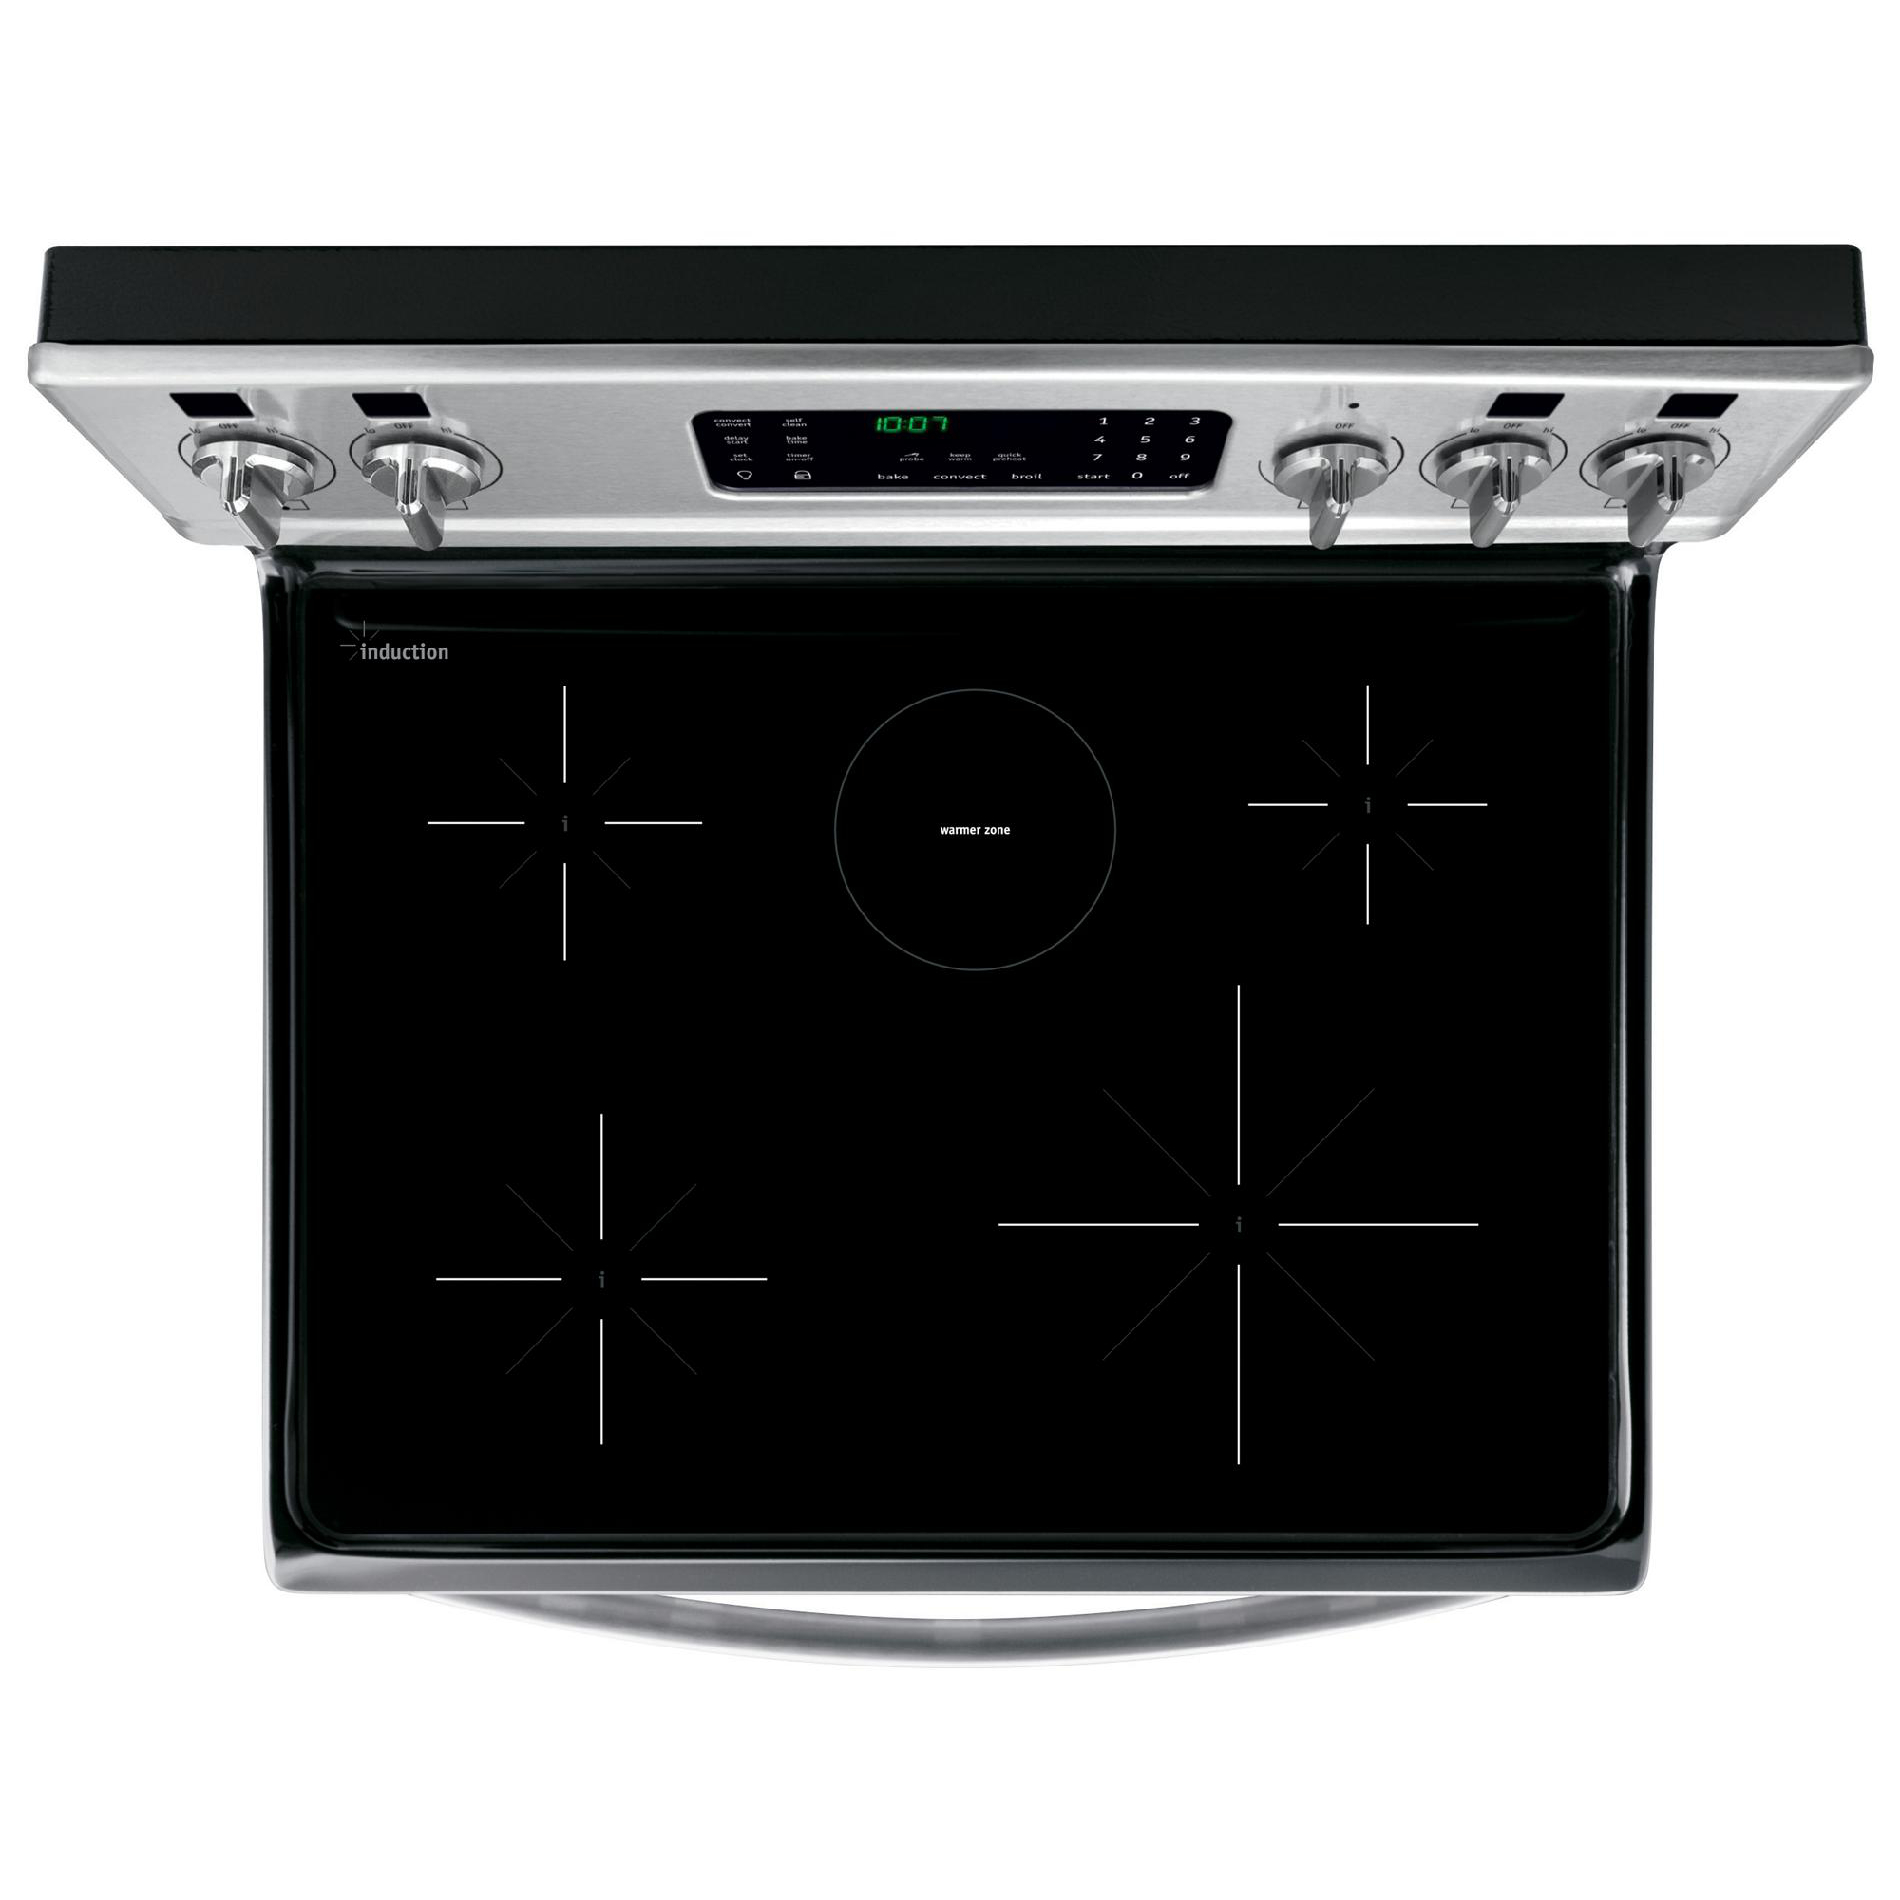 Frigidaire Gallery 5.4 cu. ft. Electric Range w/ Induction Cooktop - Stainless Steel